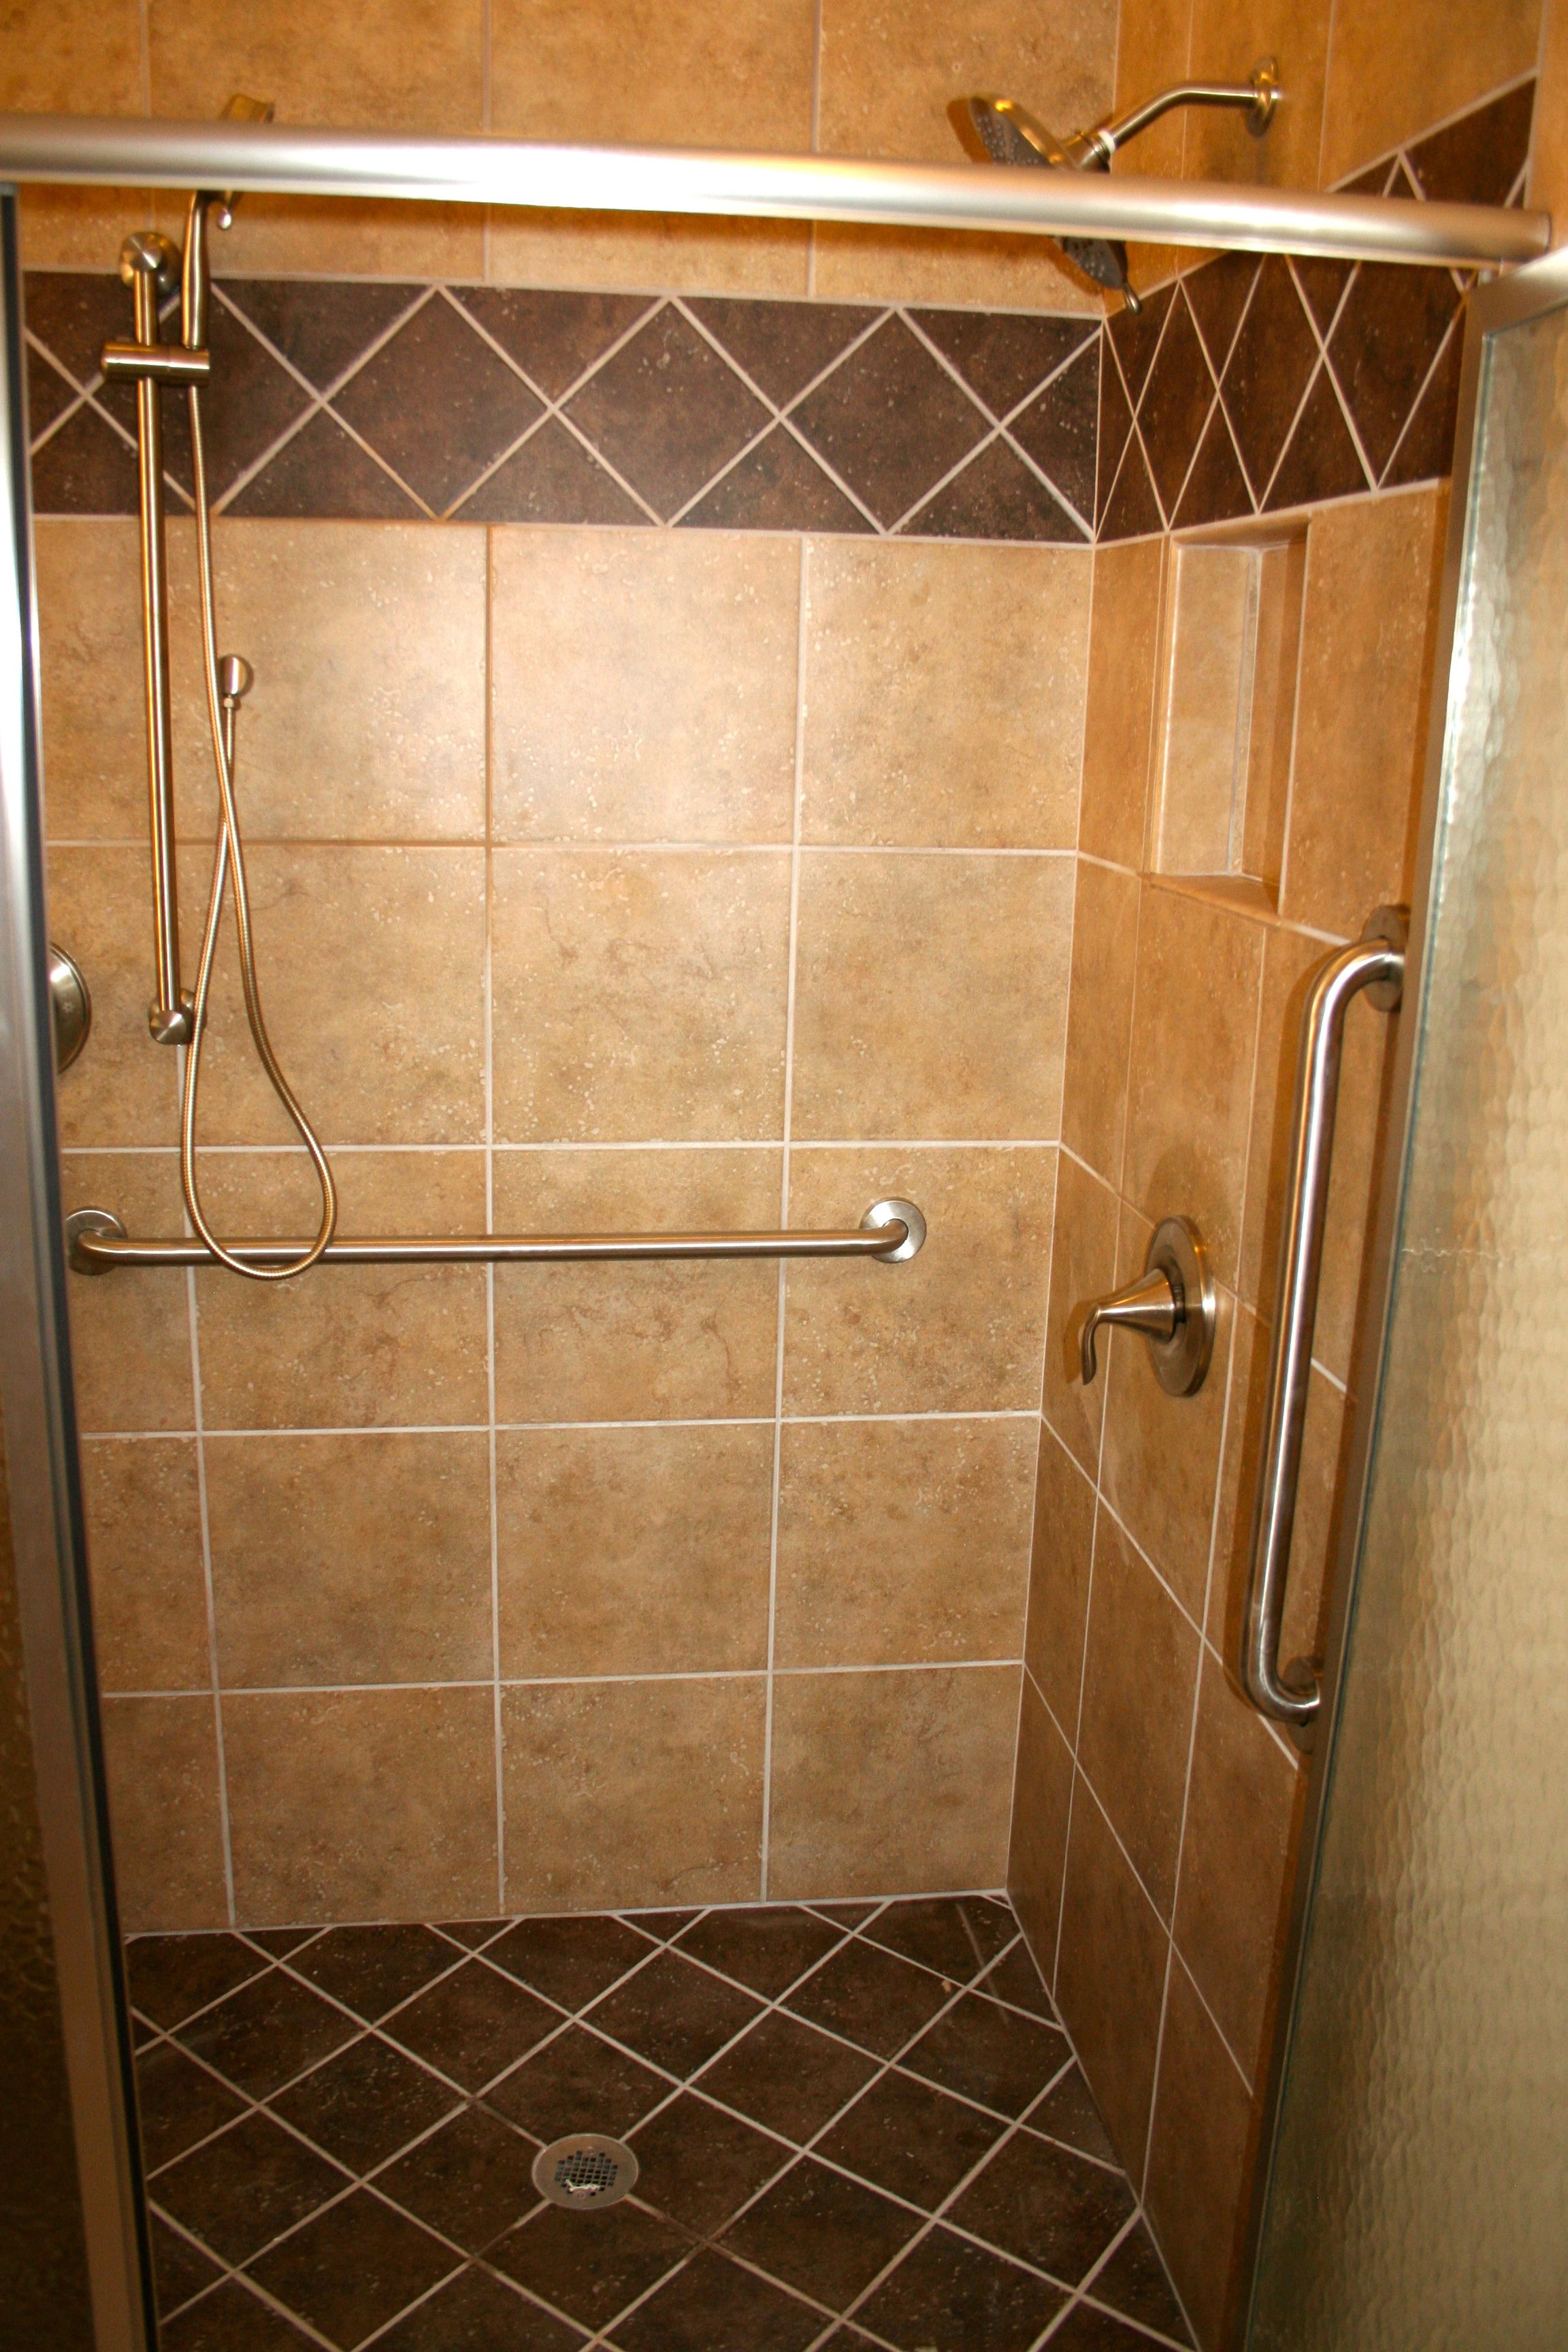 Wall tile samara altai gold with fawn grout standard accent wall tile samara altai gold with fawn grout standard accent diagonal band samara azas brown standard shower floor samara azas brown with earth dailygadgetfo Choice Image